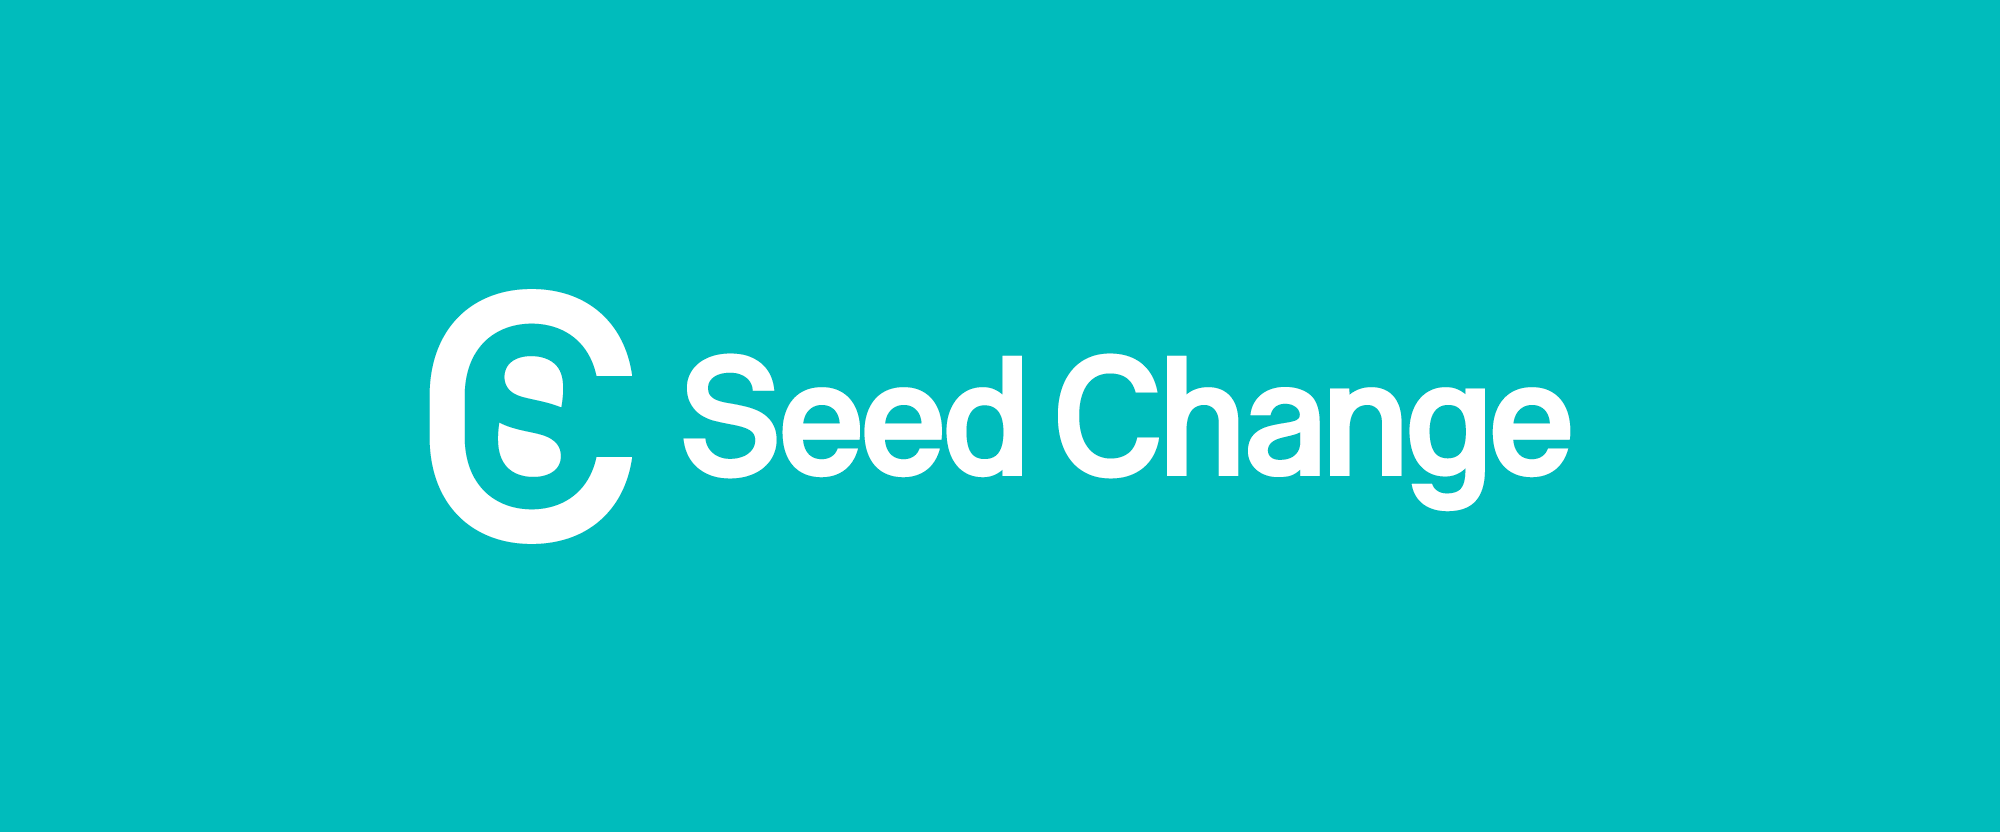 New Logo and Identity for Seed Change by Ascend Studio